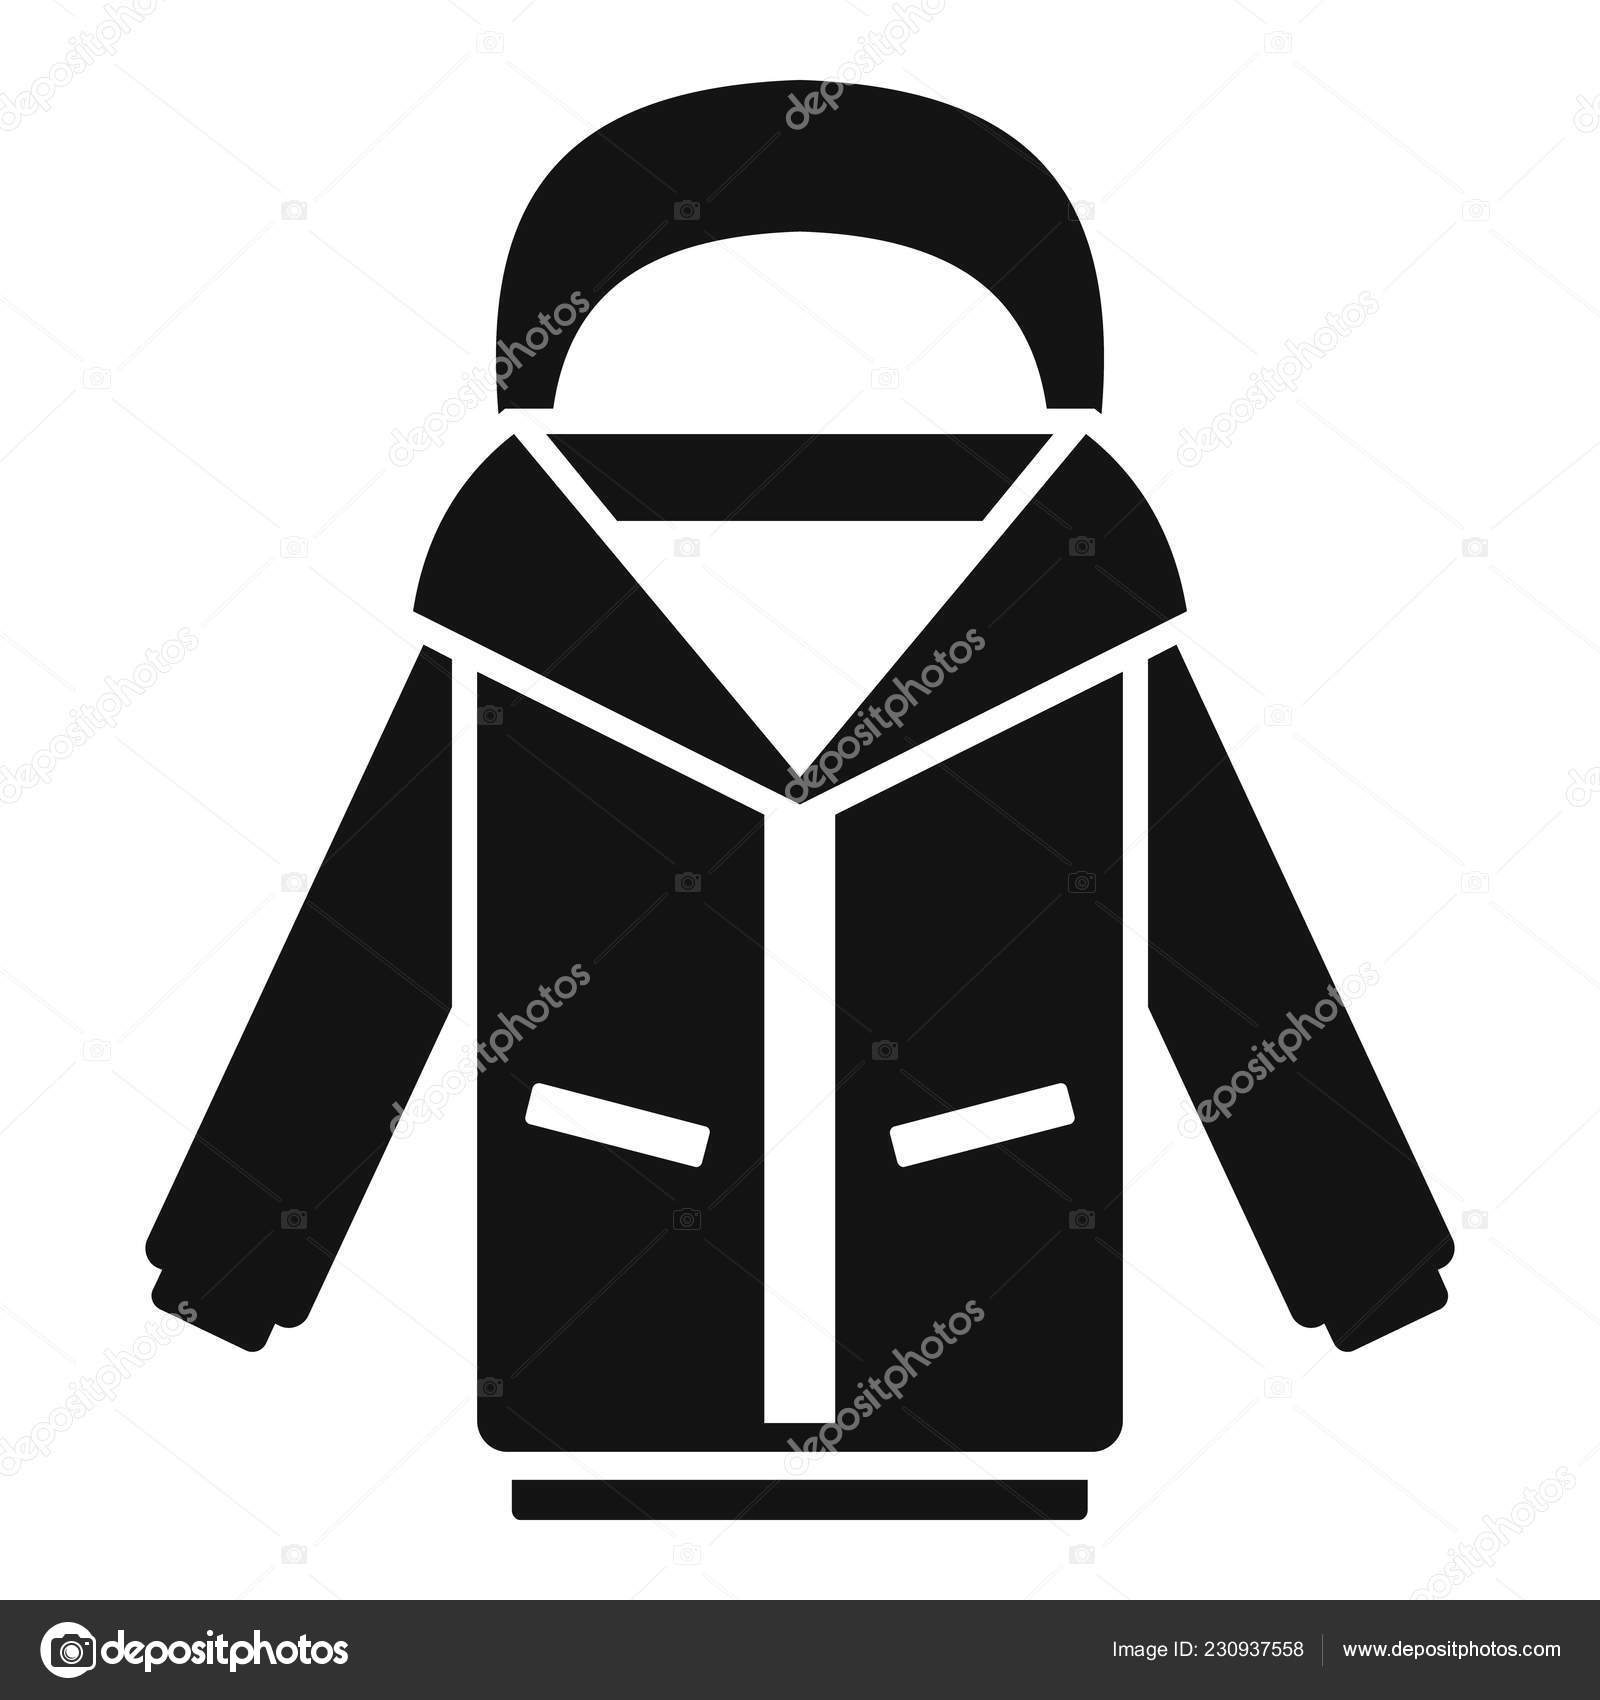 cdaf948bc9b5 Ski jacket icon. Simple illustration of ski jacket vector icon for web  design isolated on white background — Vector by ...